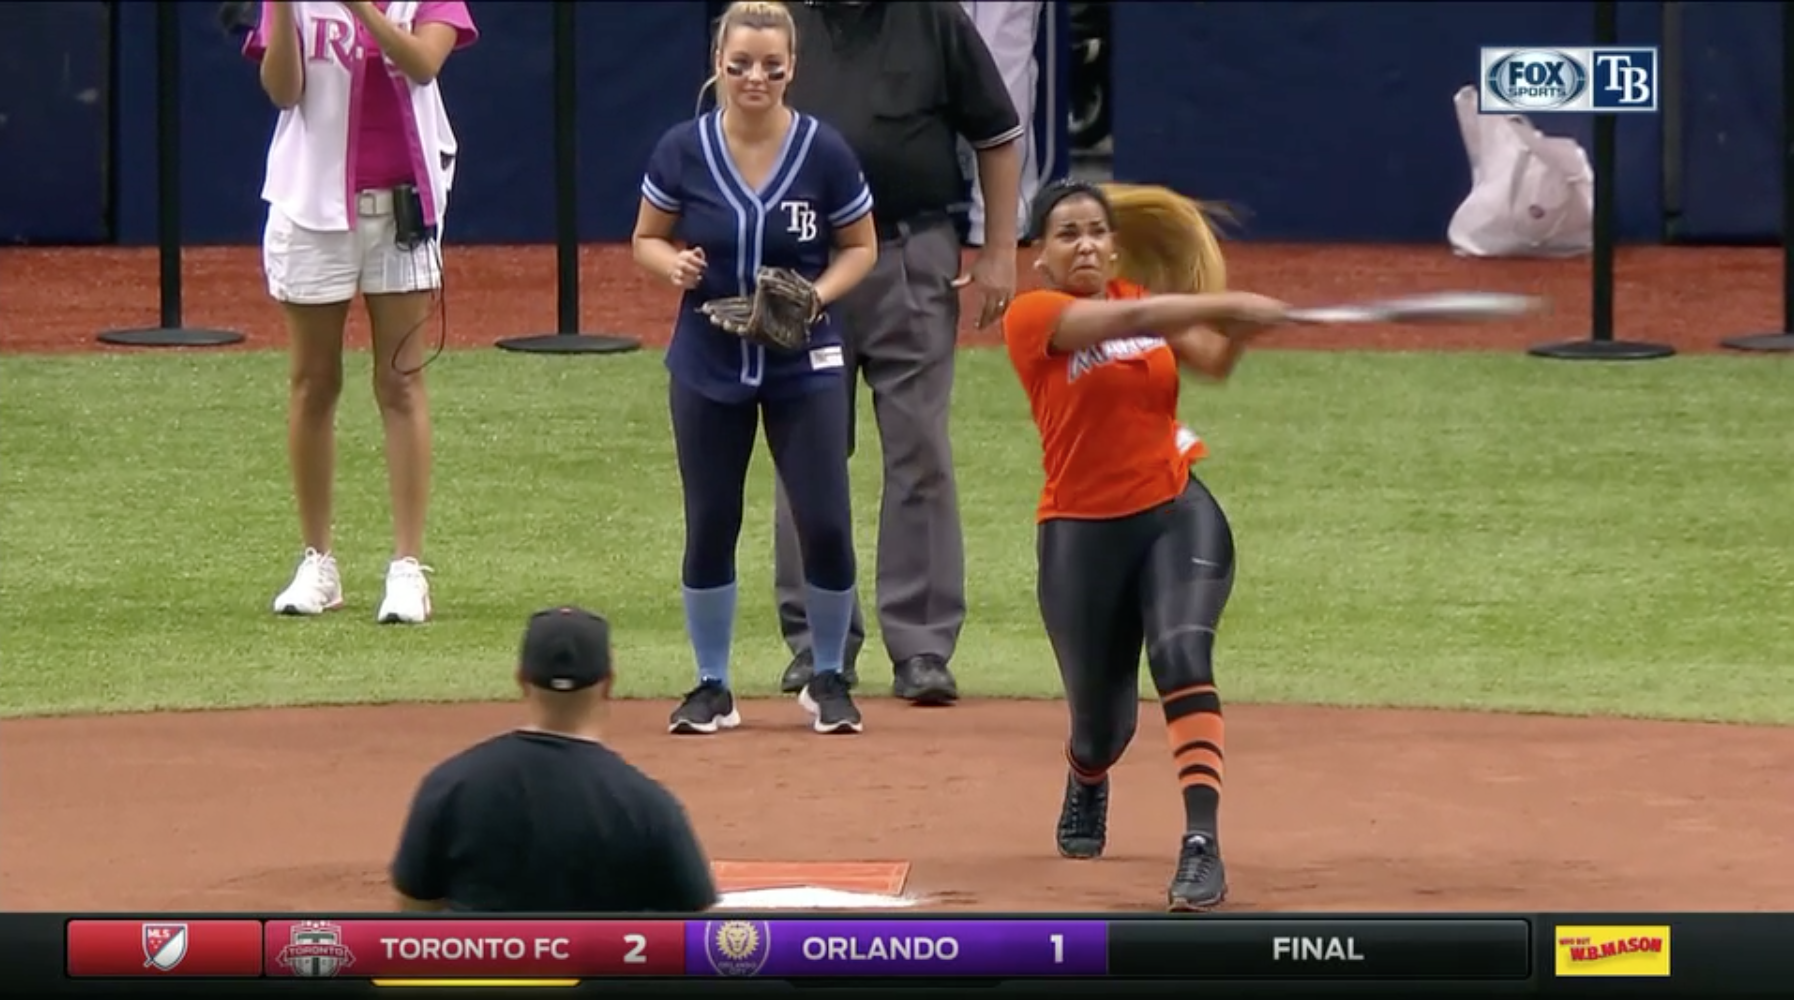 Marcell Ozuna's wife Genesis hits home run (video)